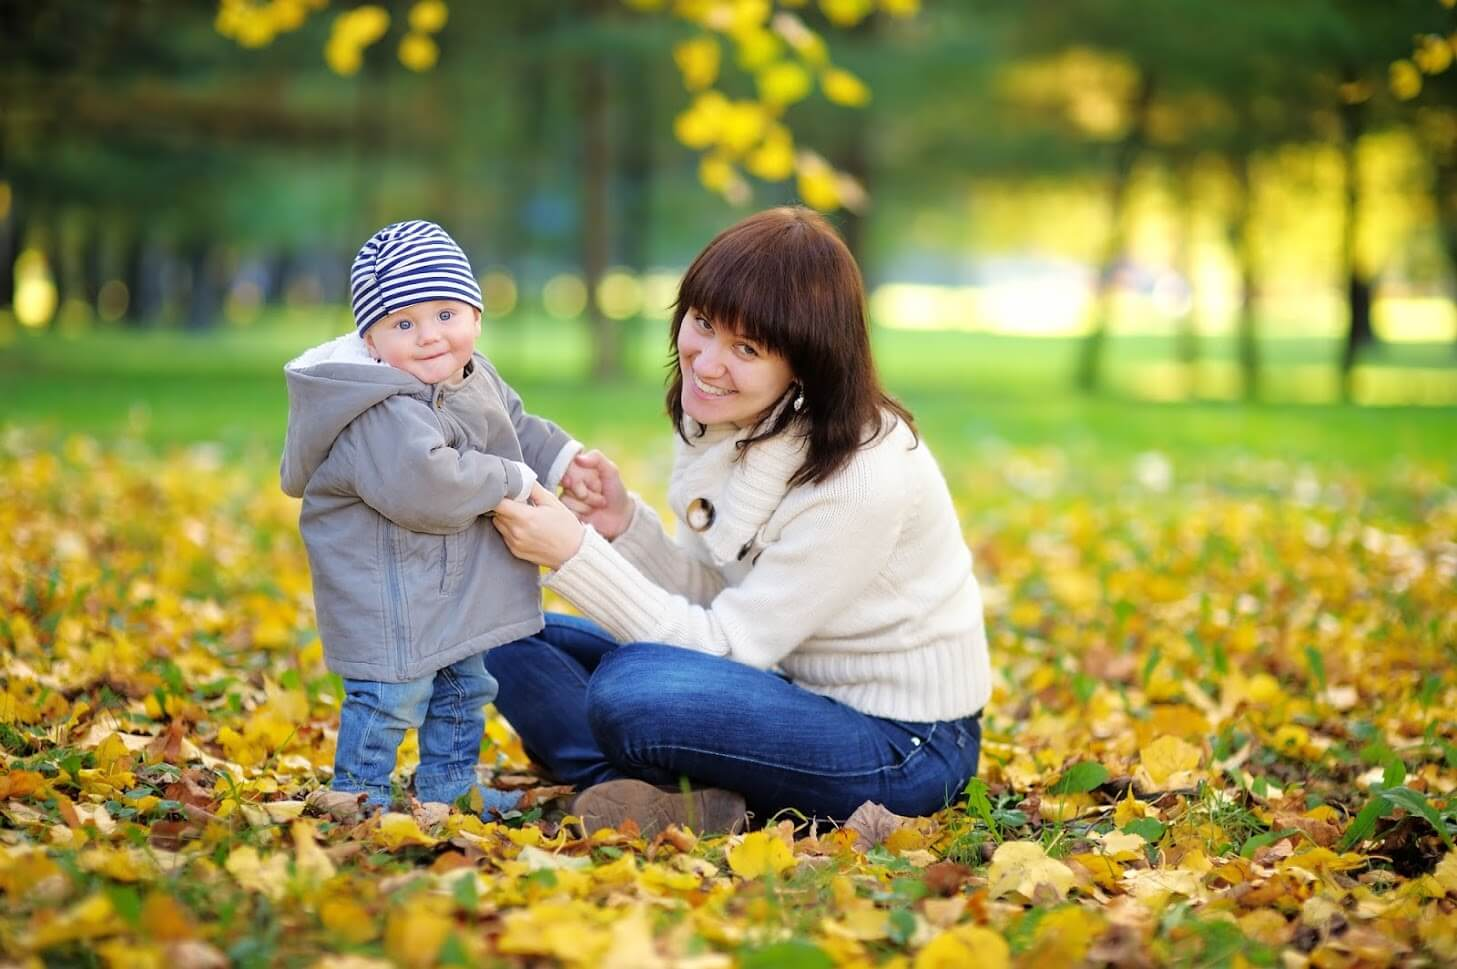 How to Keep Your Child Safe and Healthy With the Babysitter